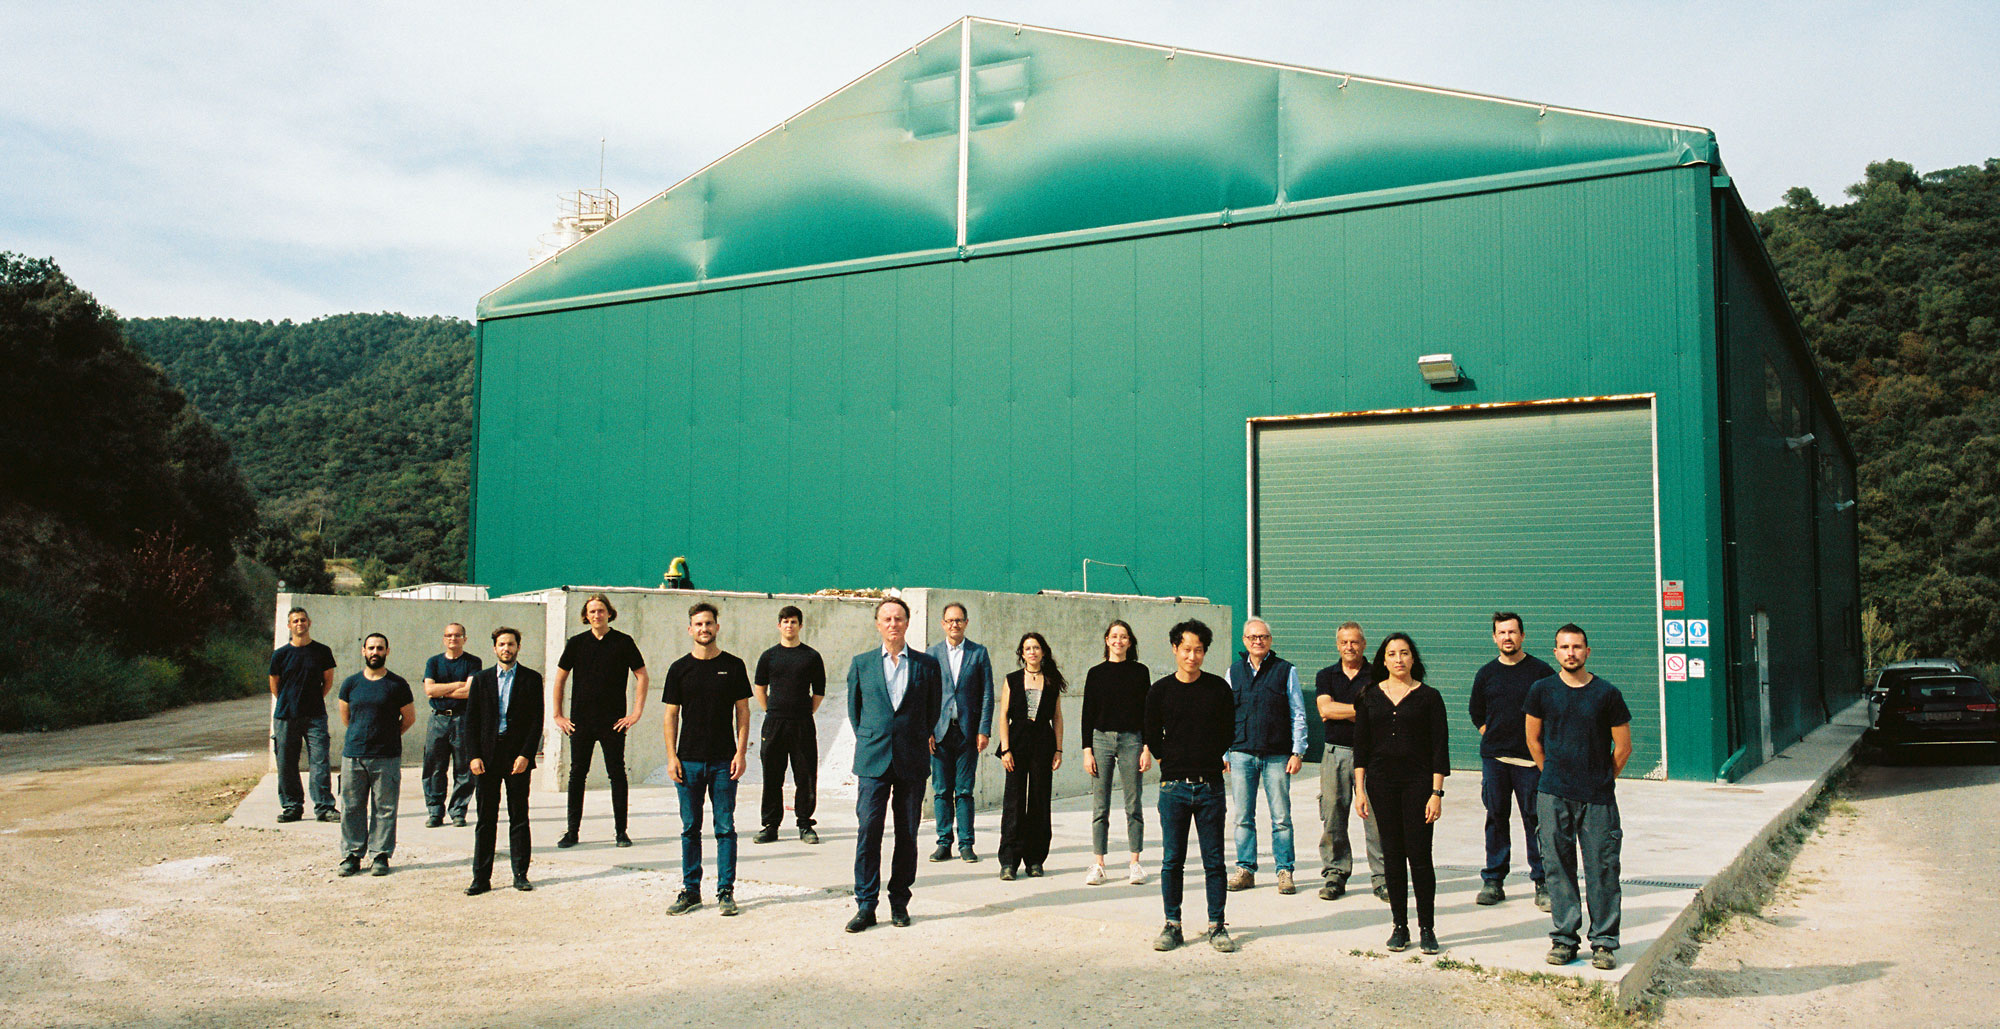 HONEXT®️ is an innovative Barcelona-based company that manufactures a carbon-neutral, circular, biotech process that upcycles waste fibres into fully recyclable, non-toxic panels.